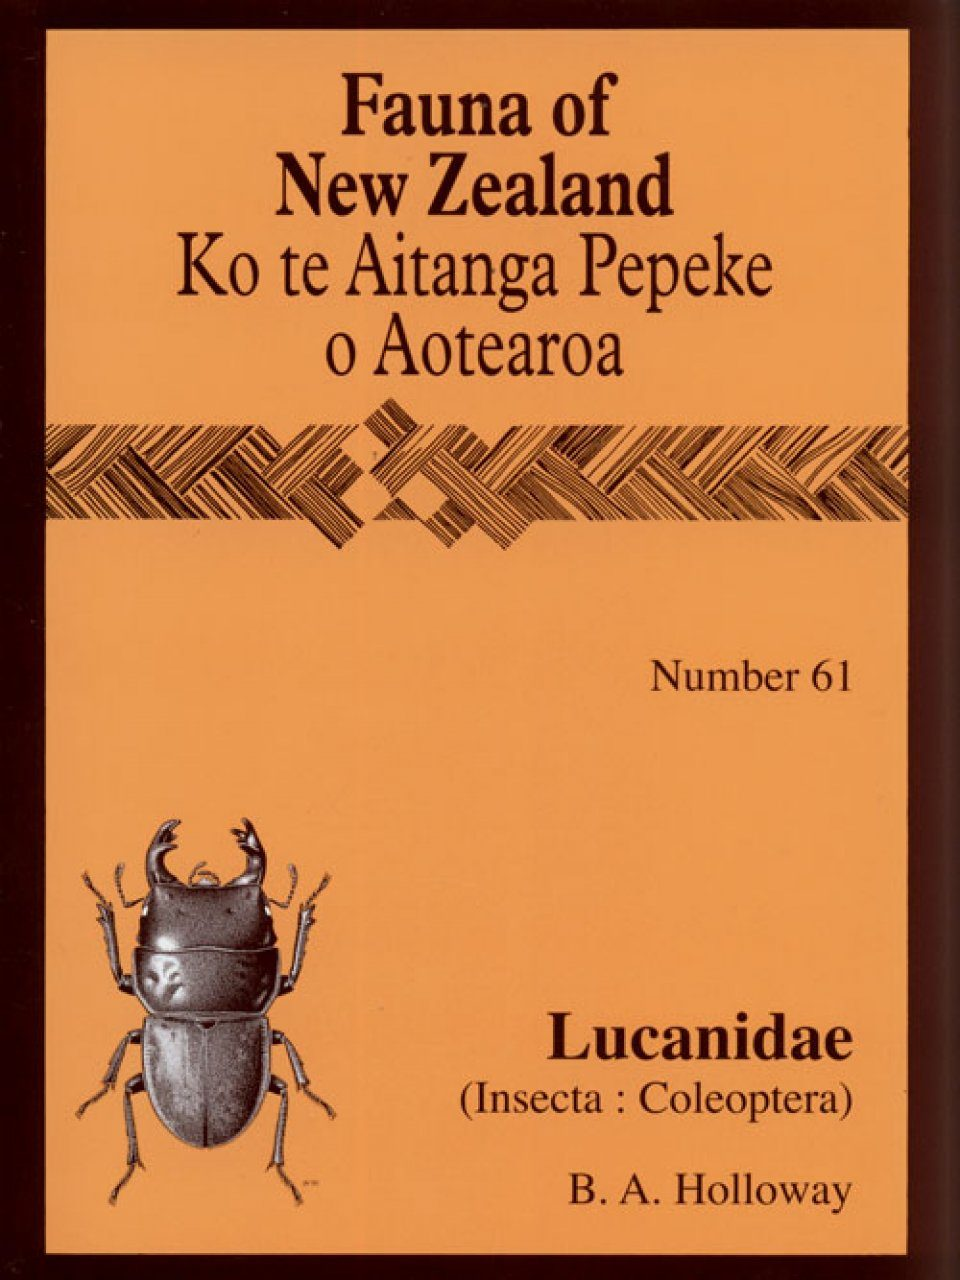 Fauna of New Zealand, No 61: Lucanidae (Insecta: Coleoptera)